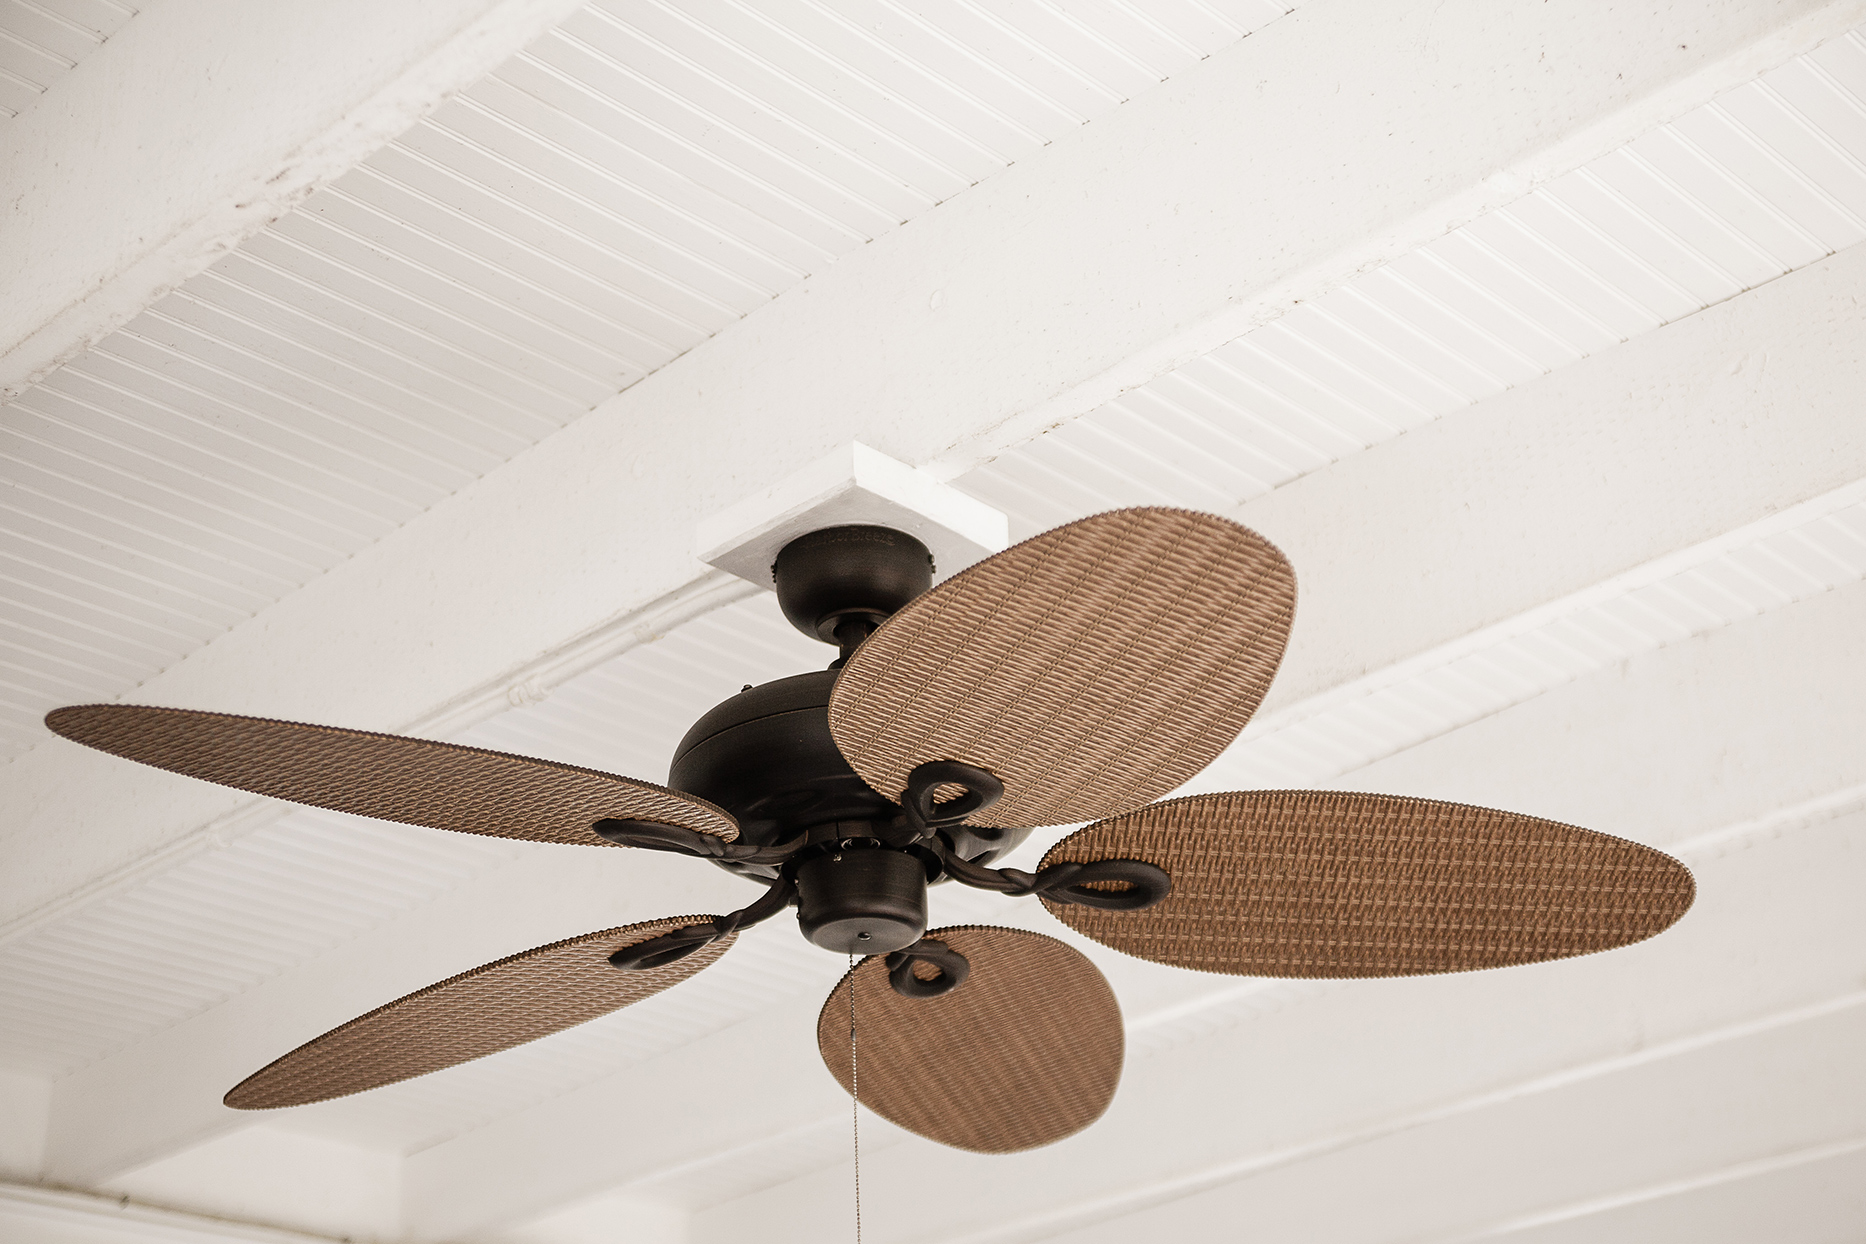 Ceiling fan with round blades